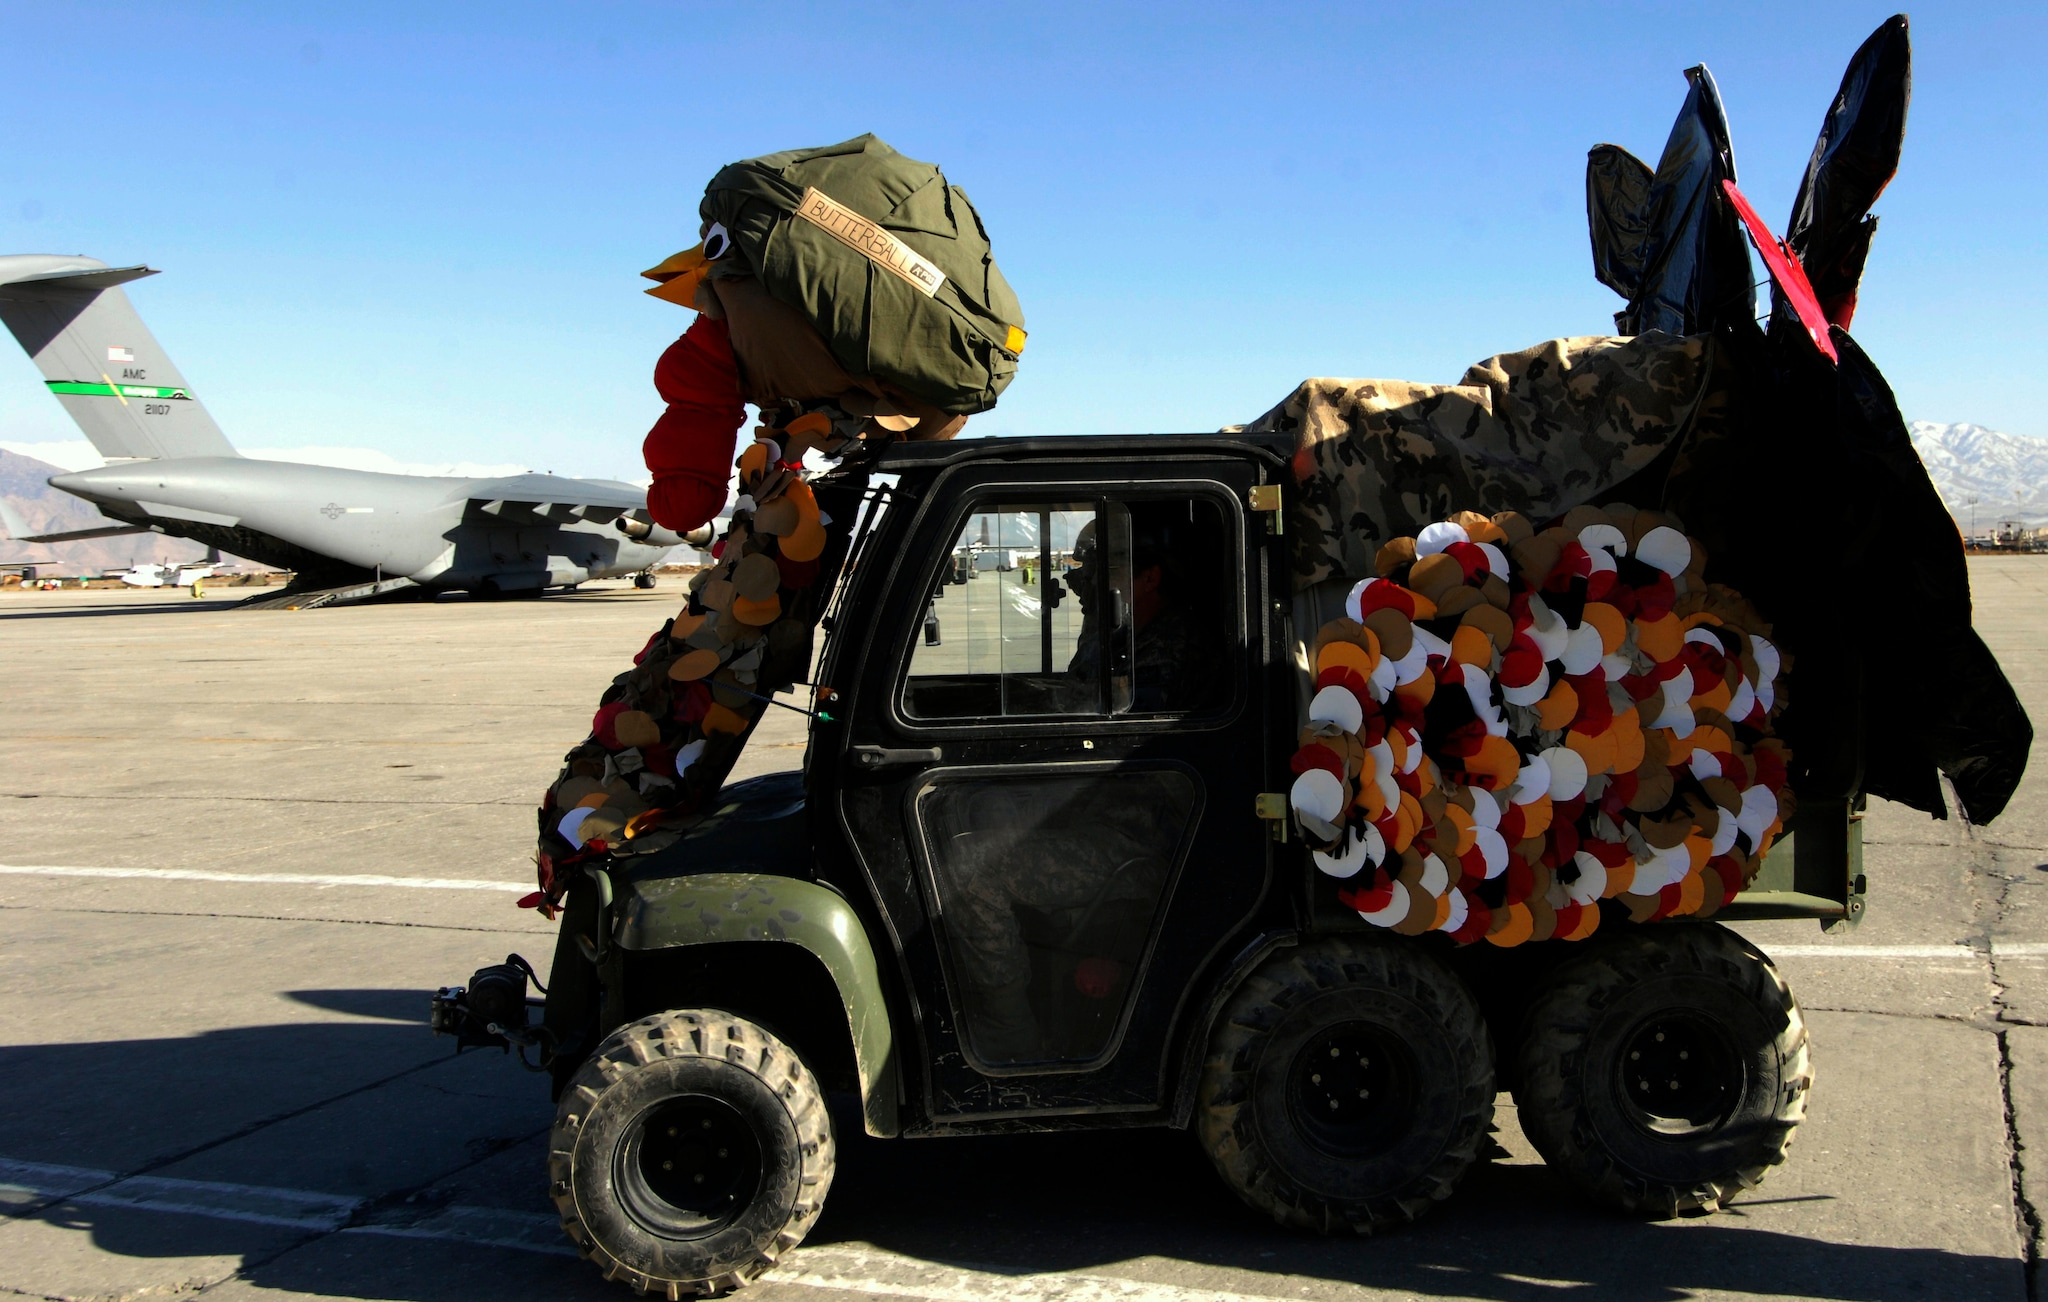 The Thanksgiving Day Parade at Bagram Air Base, Afghanistan, 2009 (Photo: U.S. Air Force)